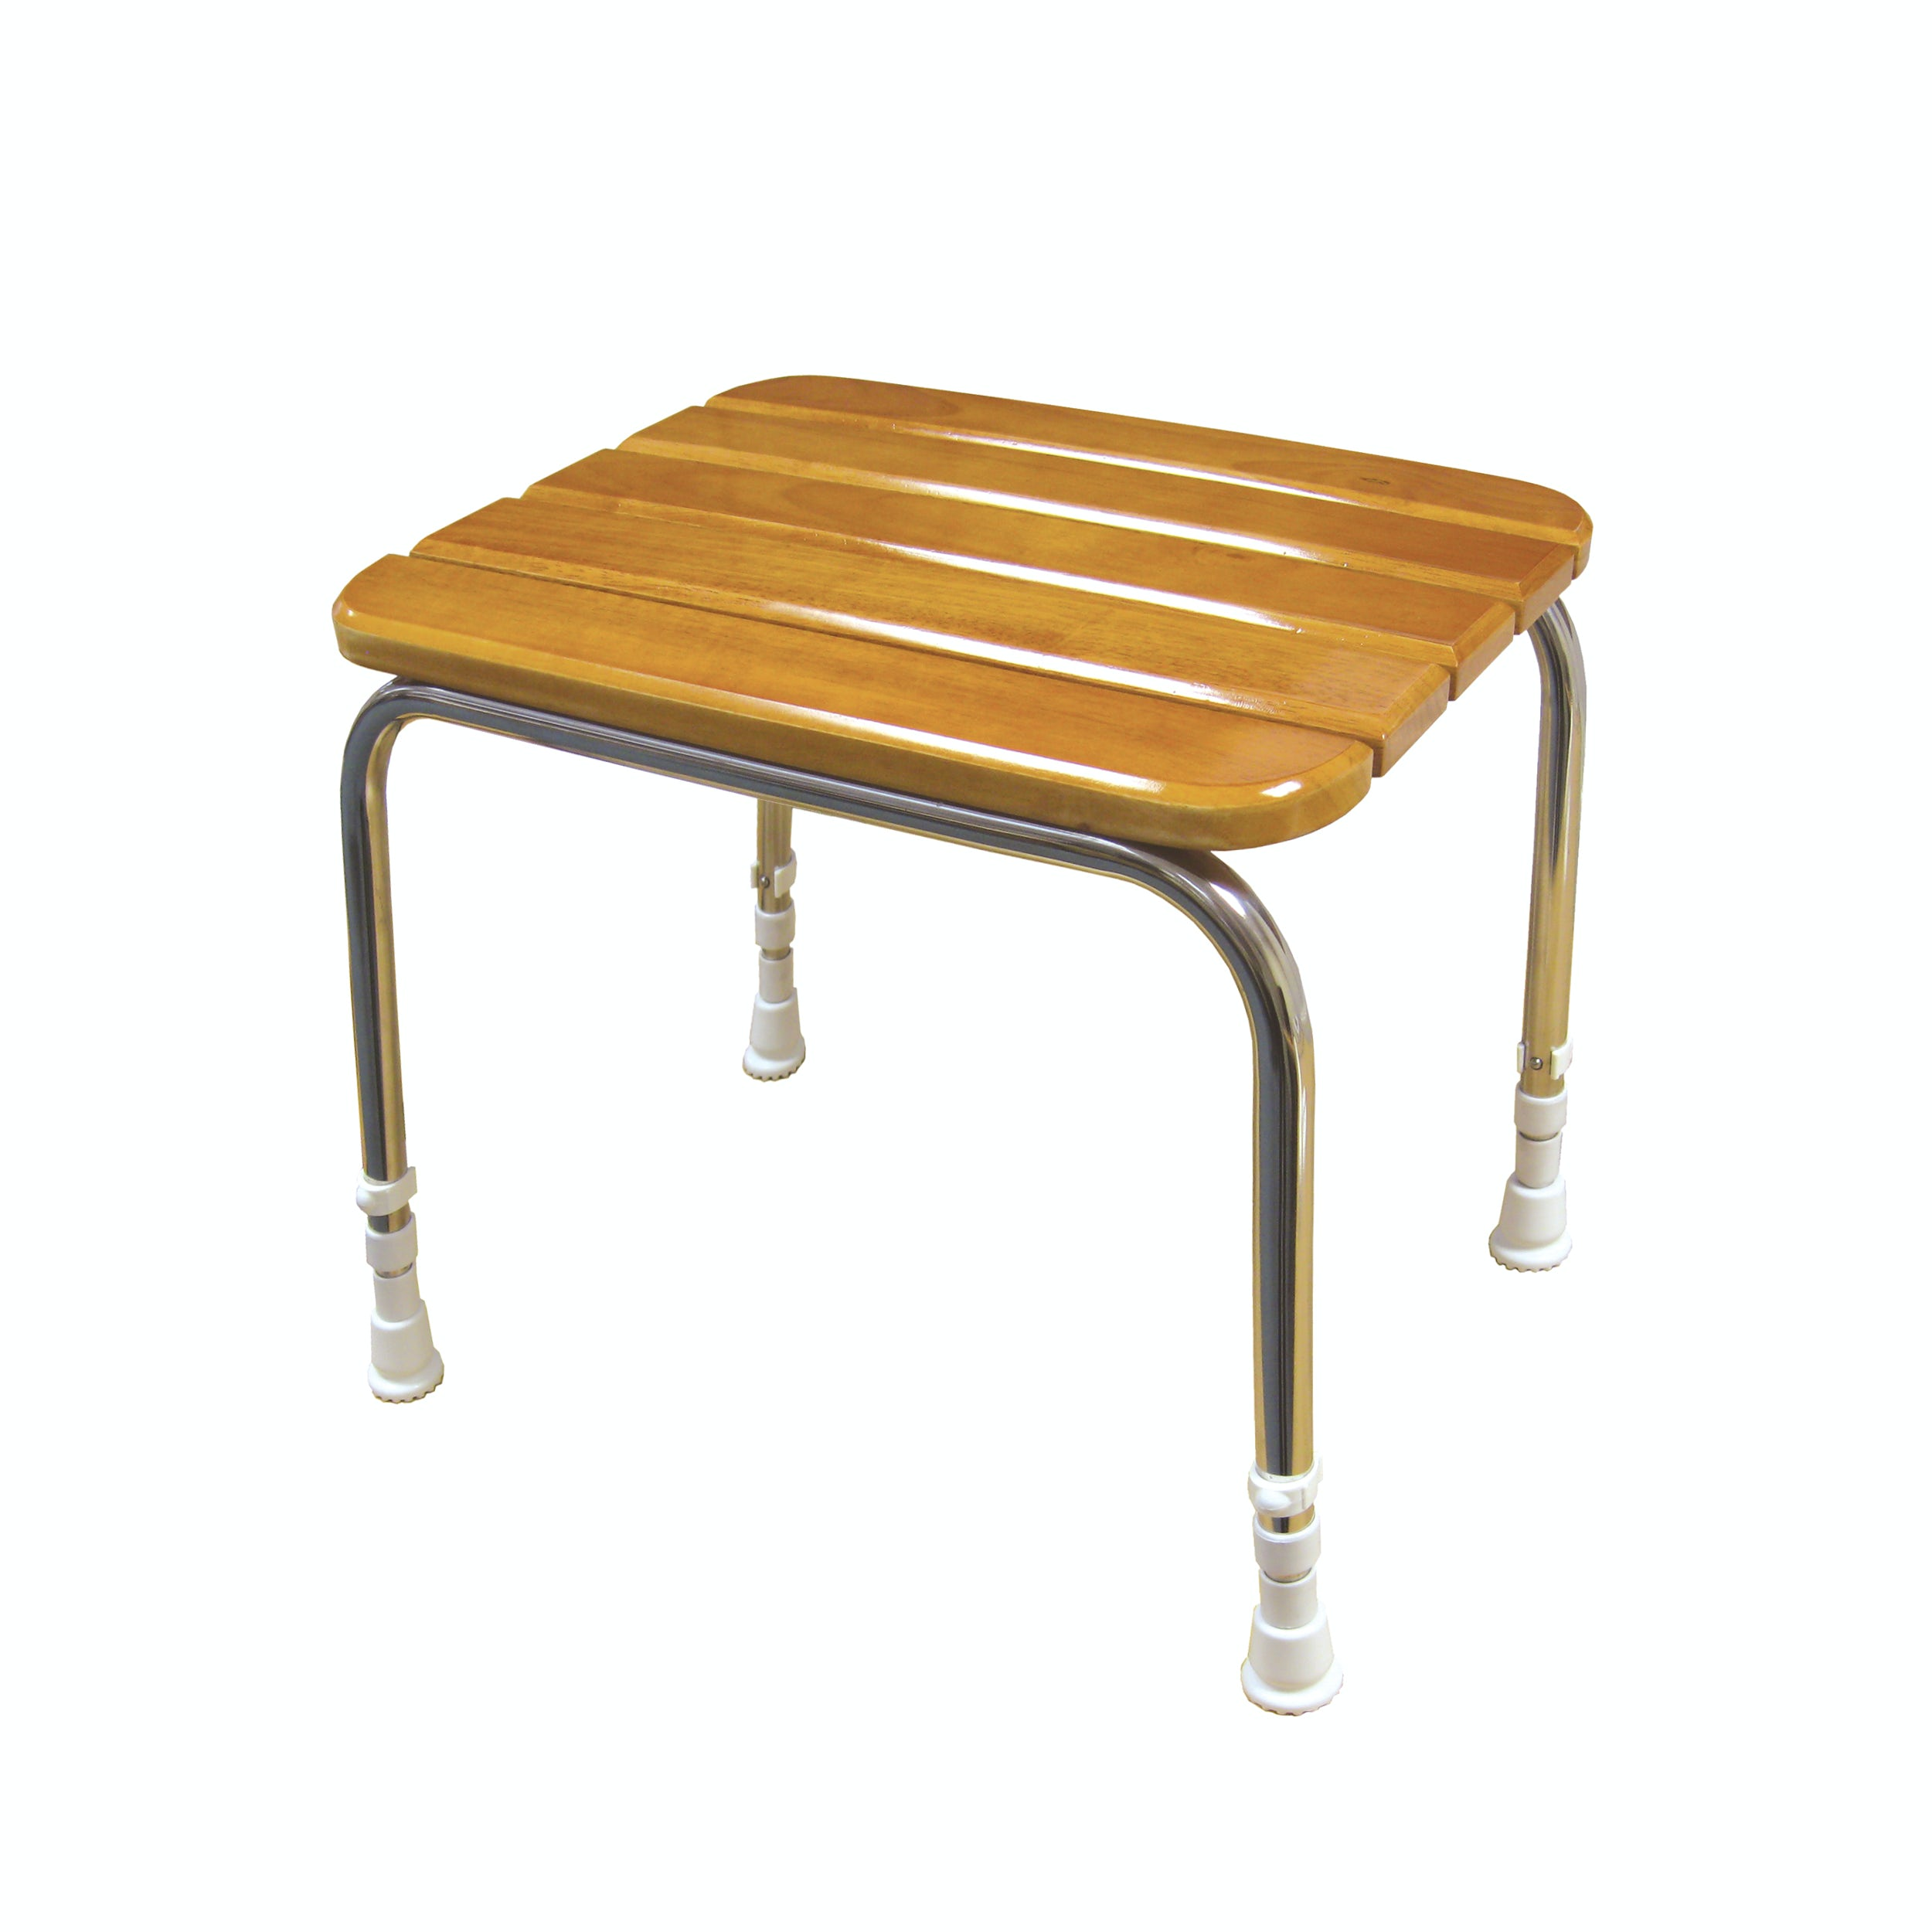 AKW Wooden freestanding shower seat